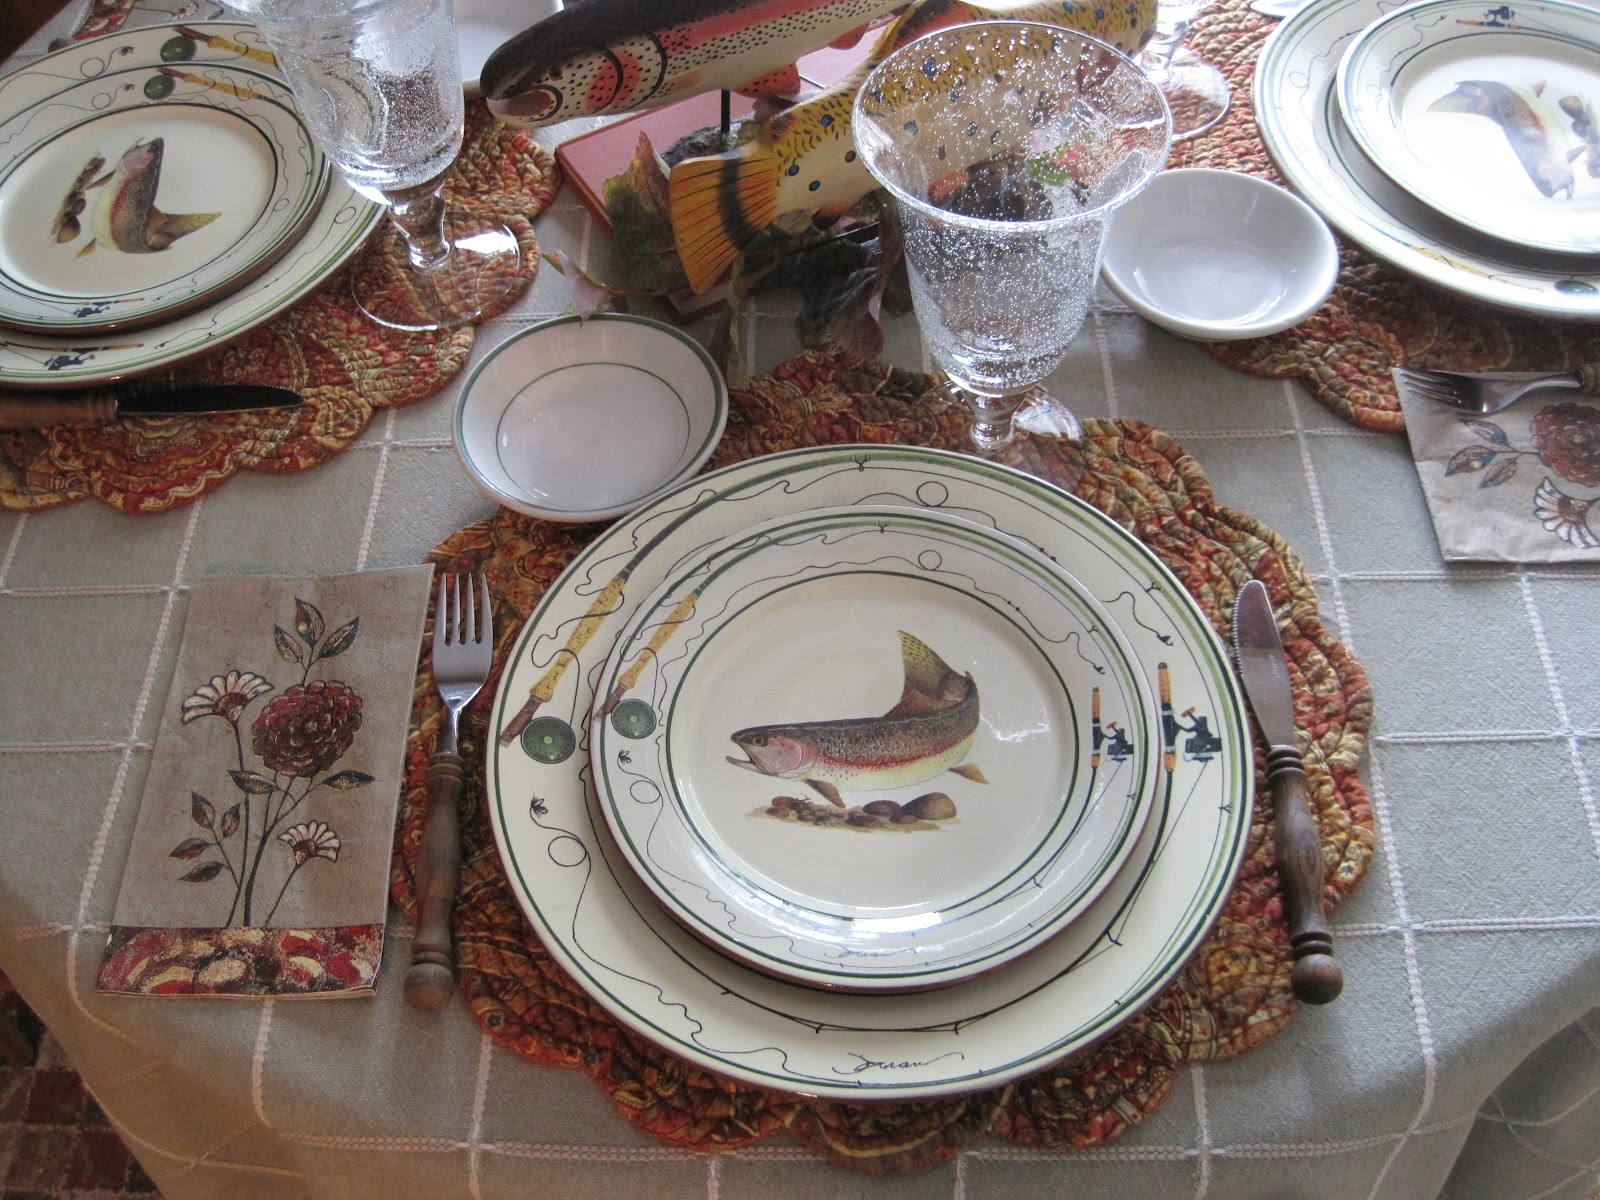 http://1.bp.blogspot.com/-8-j3Rs8YdRI/T9zKmx0uCqI/AAAAAAAAE_8/uqK-k0L0LGo/s1600/Father\'s+Day+Tablescape+&+Sunflowers+029.JPG